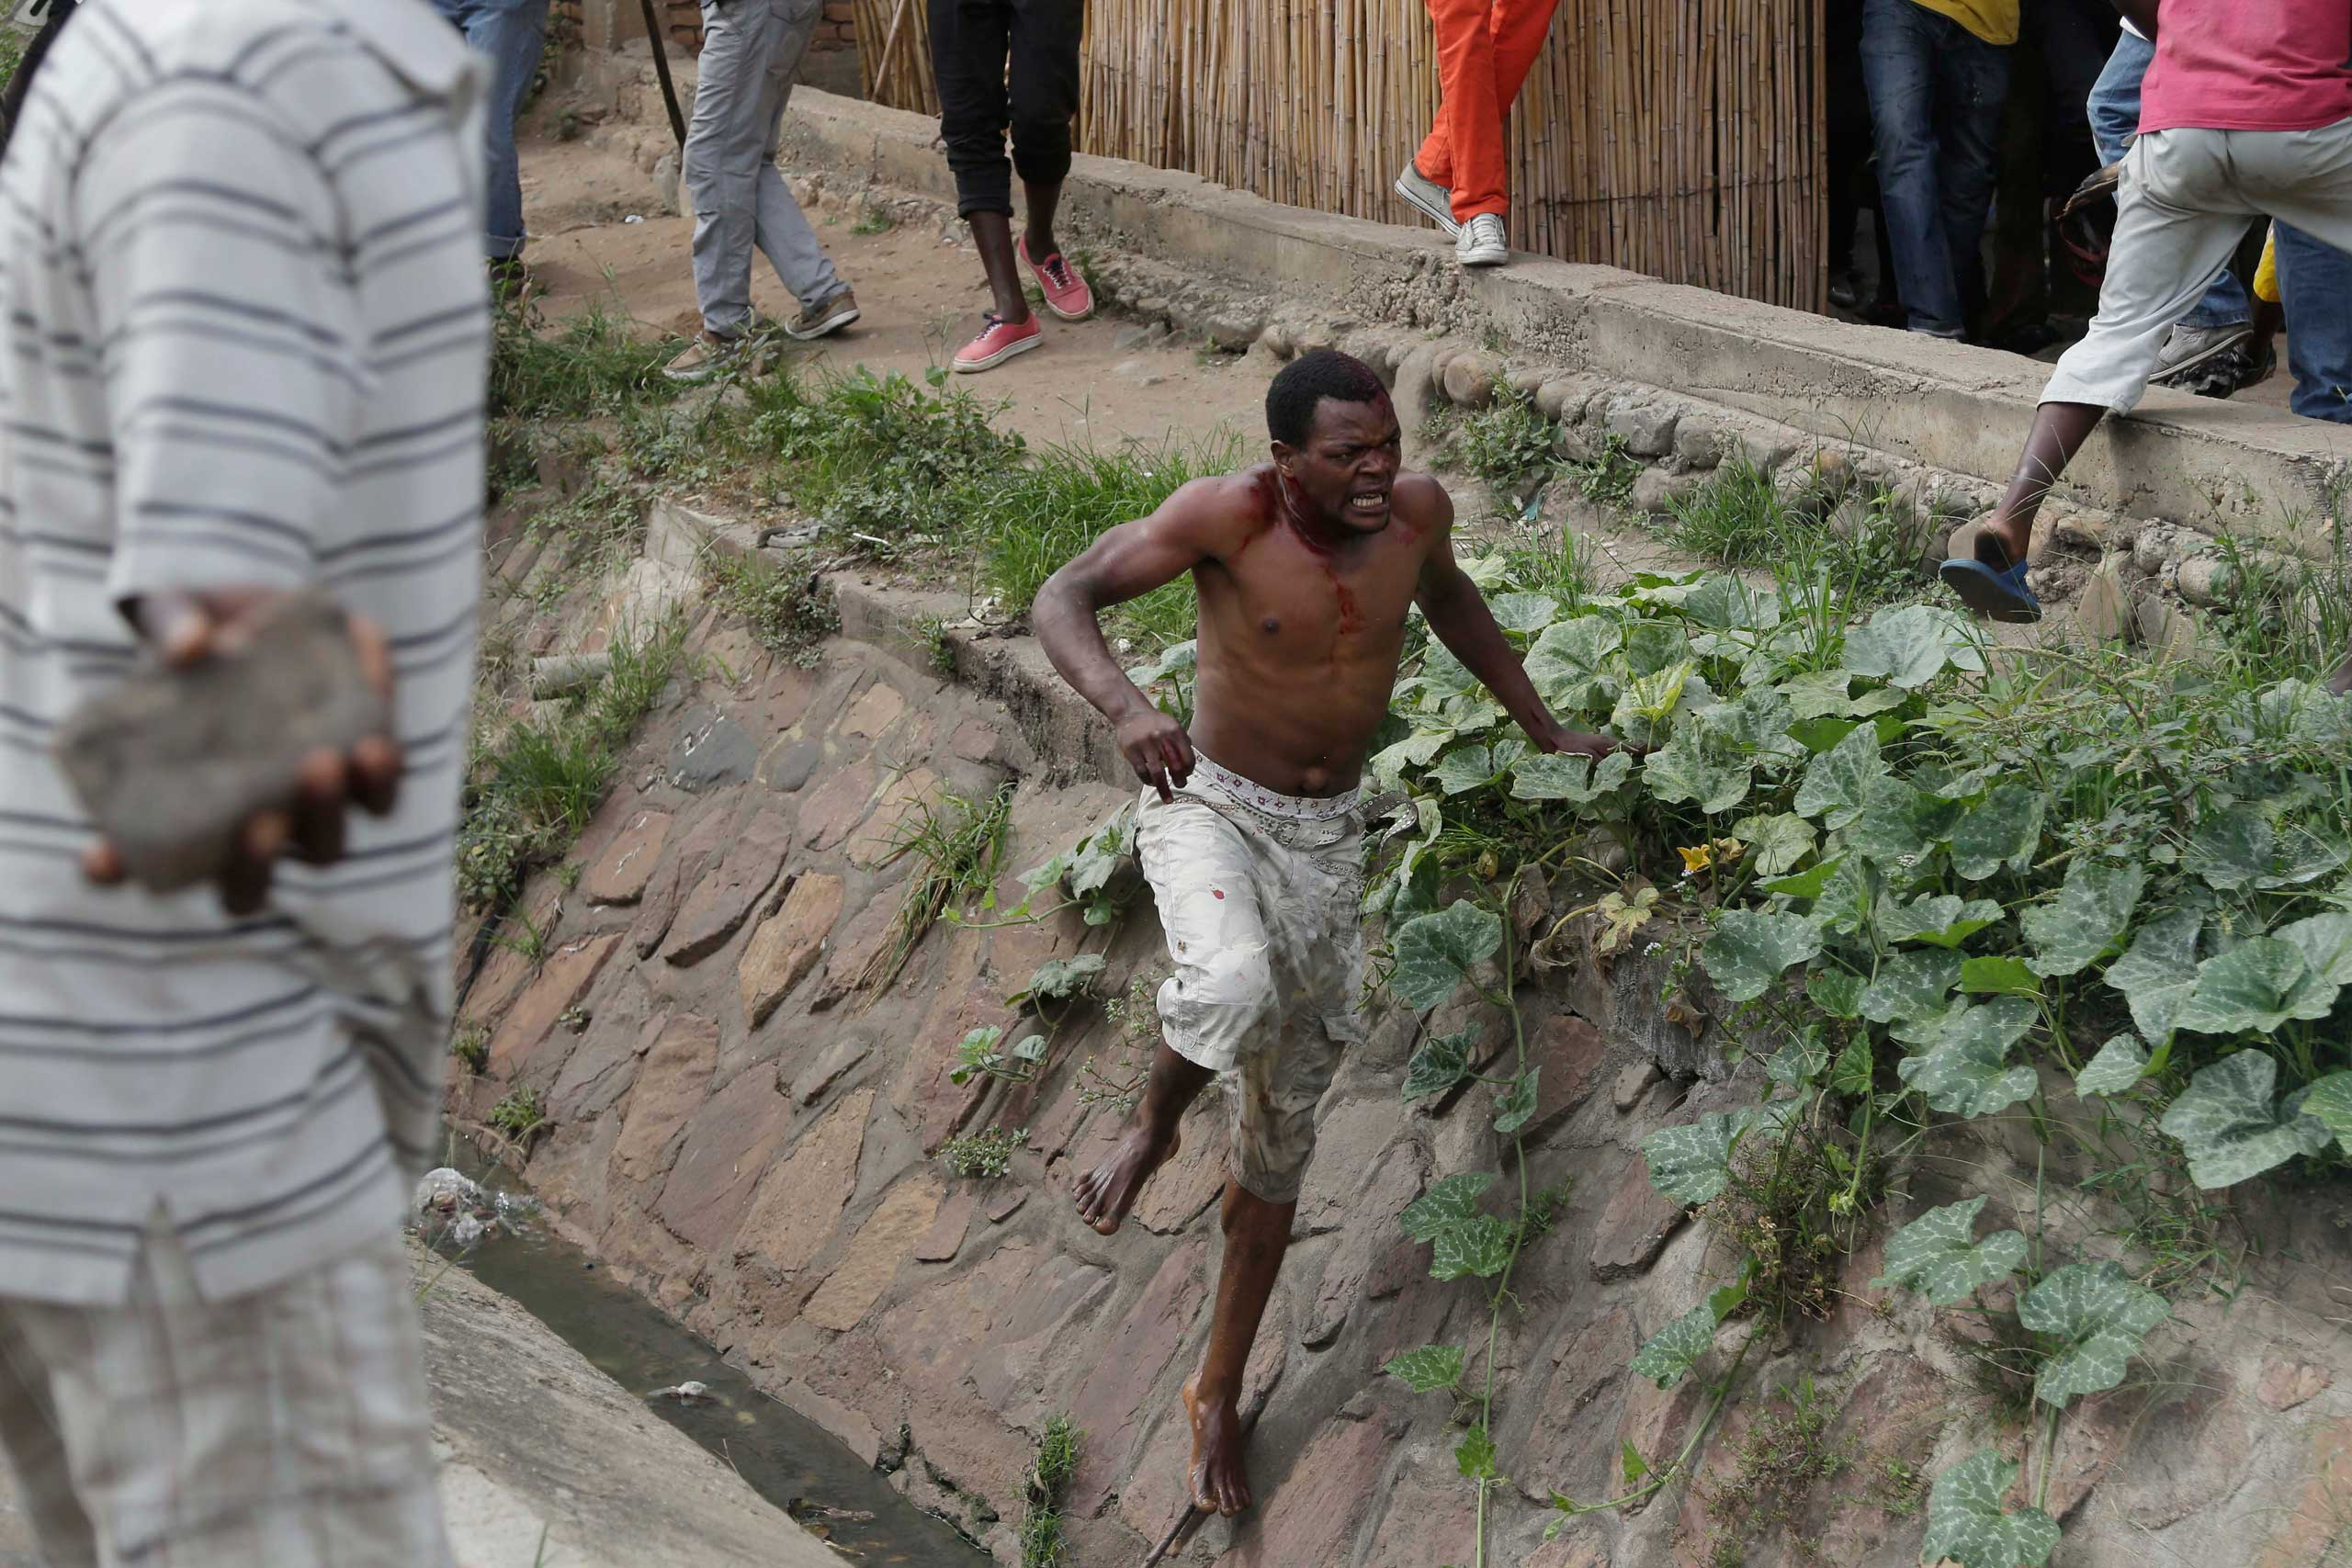 Niyonzima flees from his house into a sewer under a hail of stones thrown by a mob.